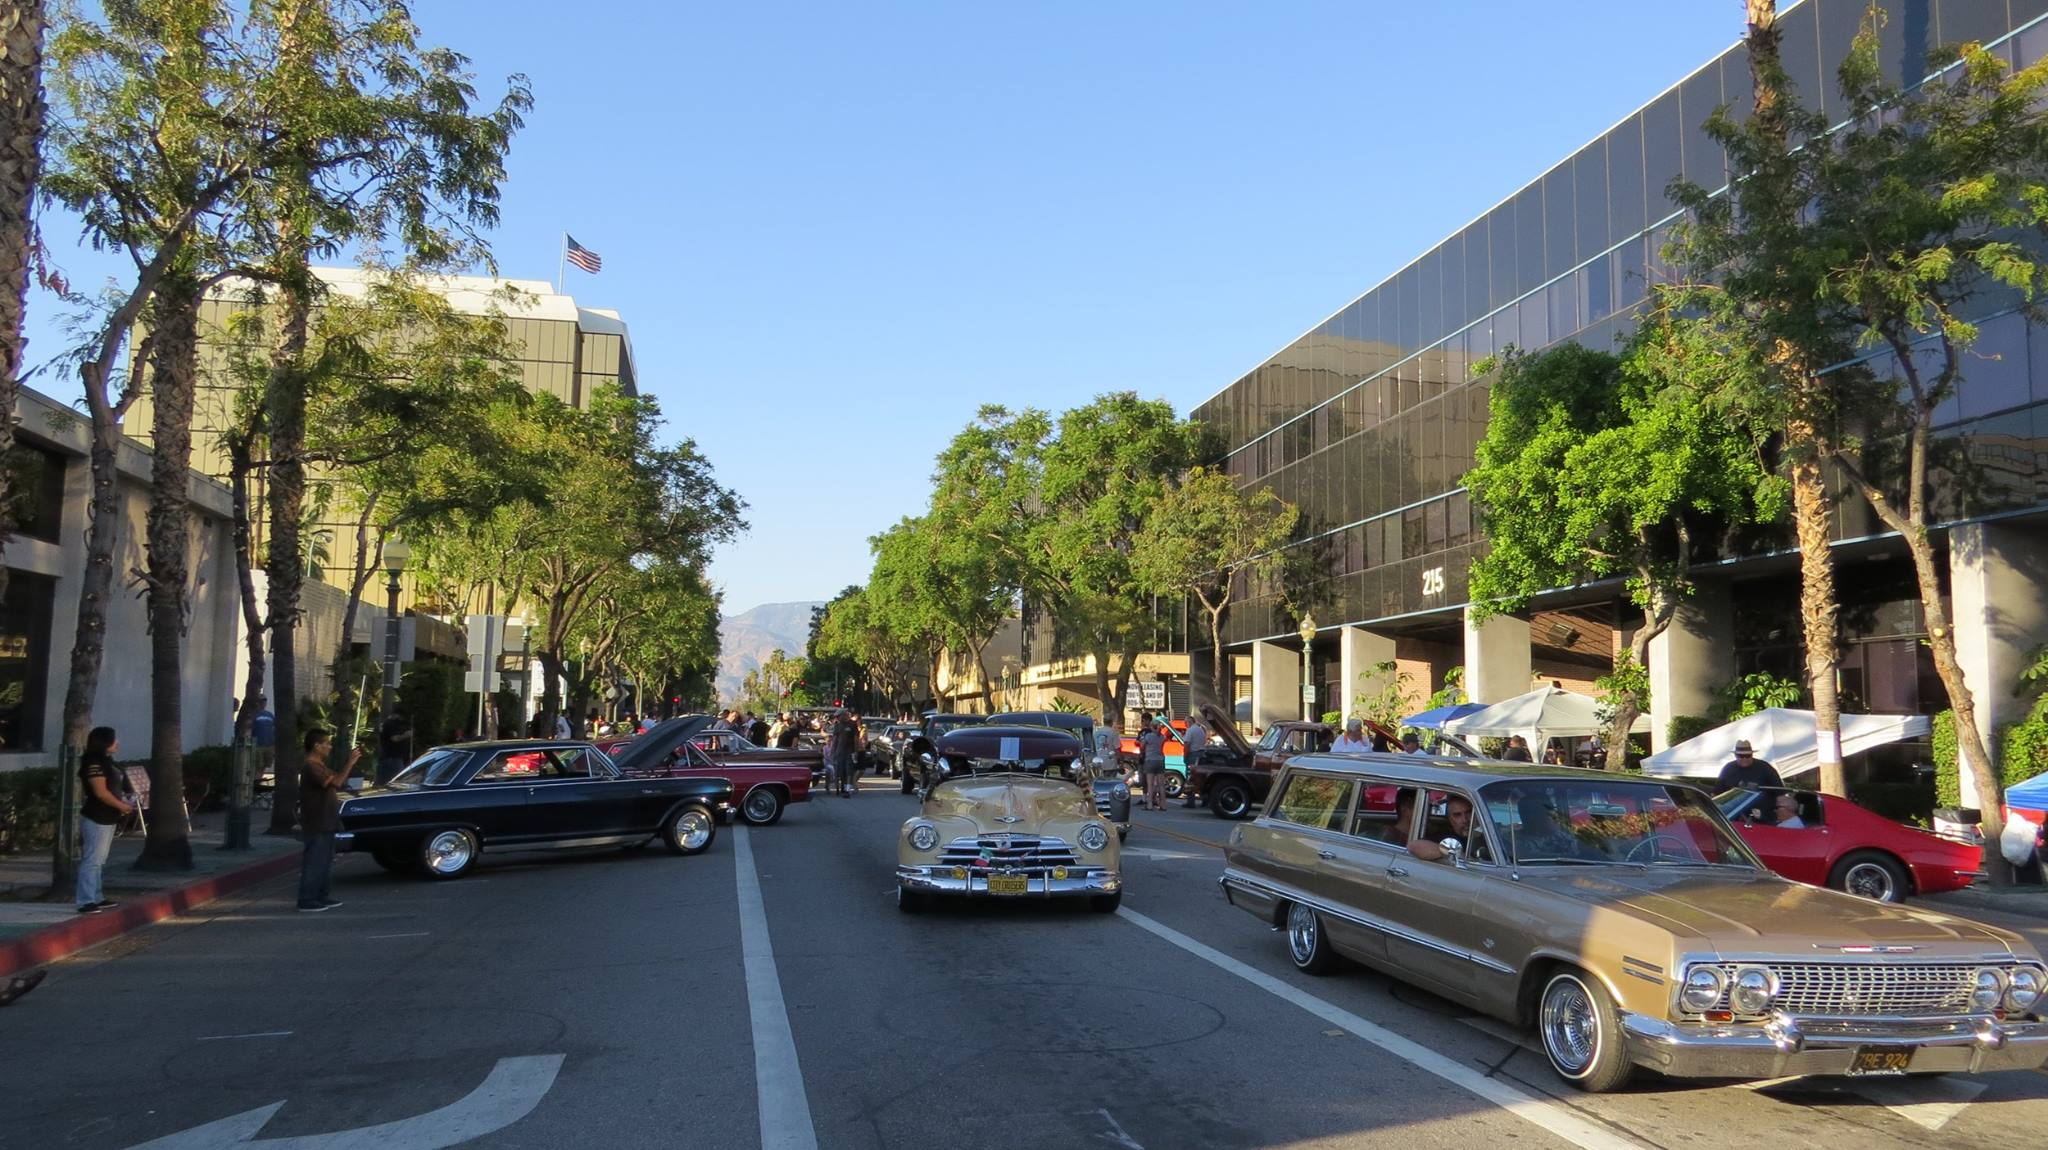 7th Annual Rendezvous Back to Route 66 Car Show | Downtown San